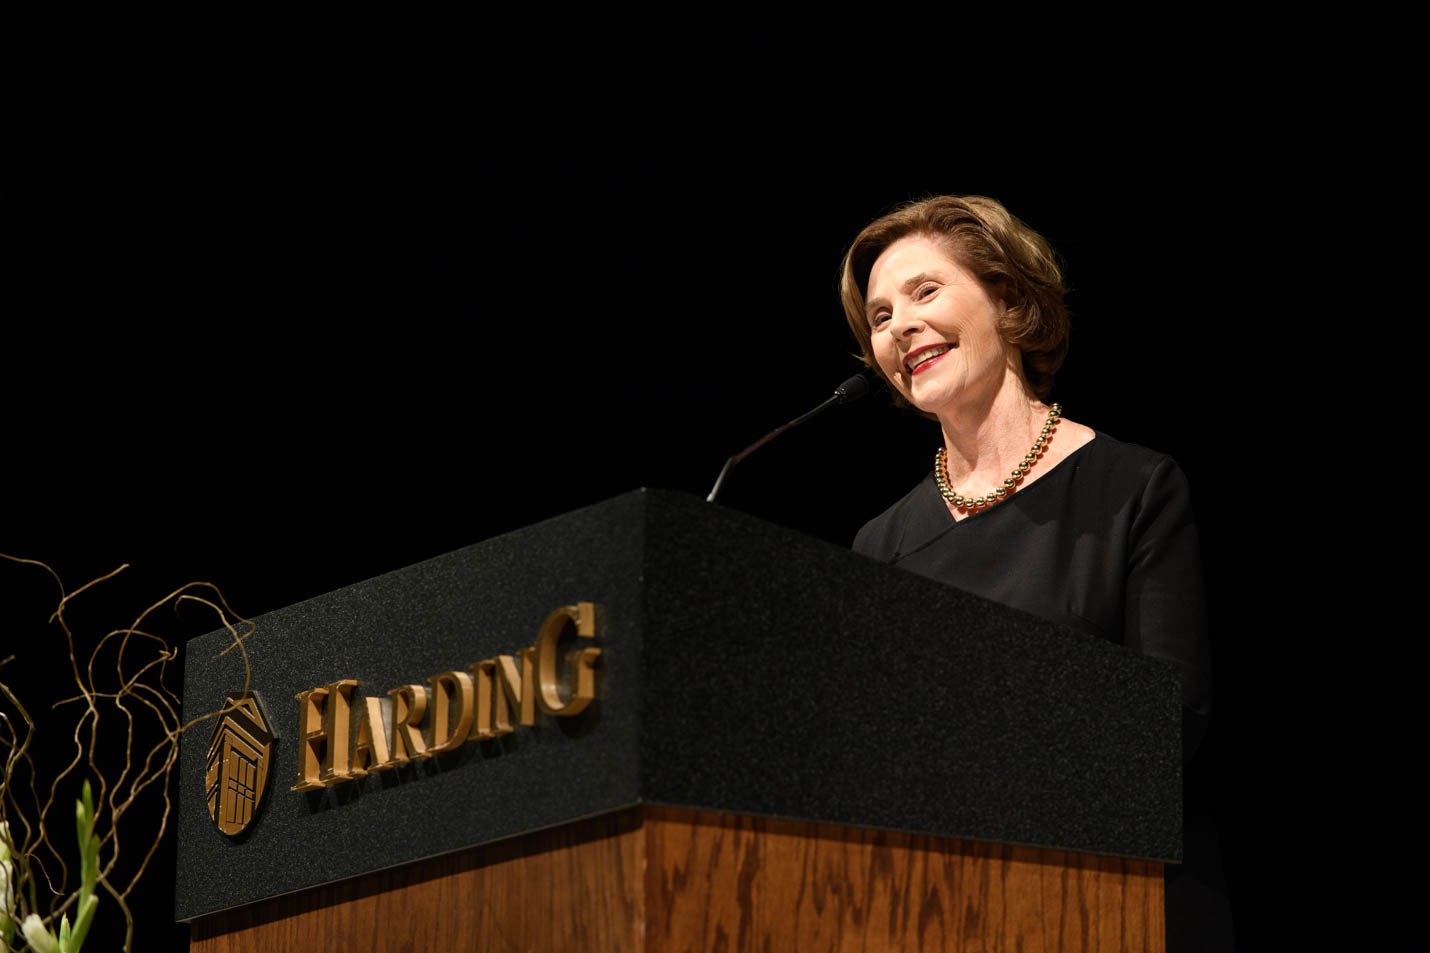 This is a photo of Laura Bush.